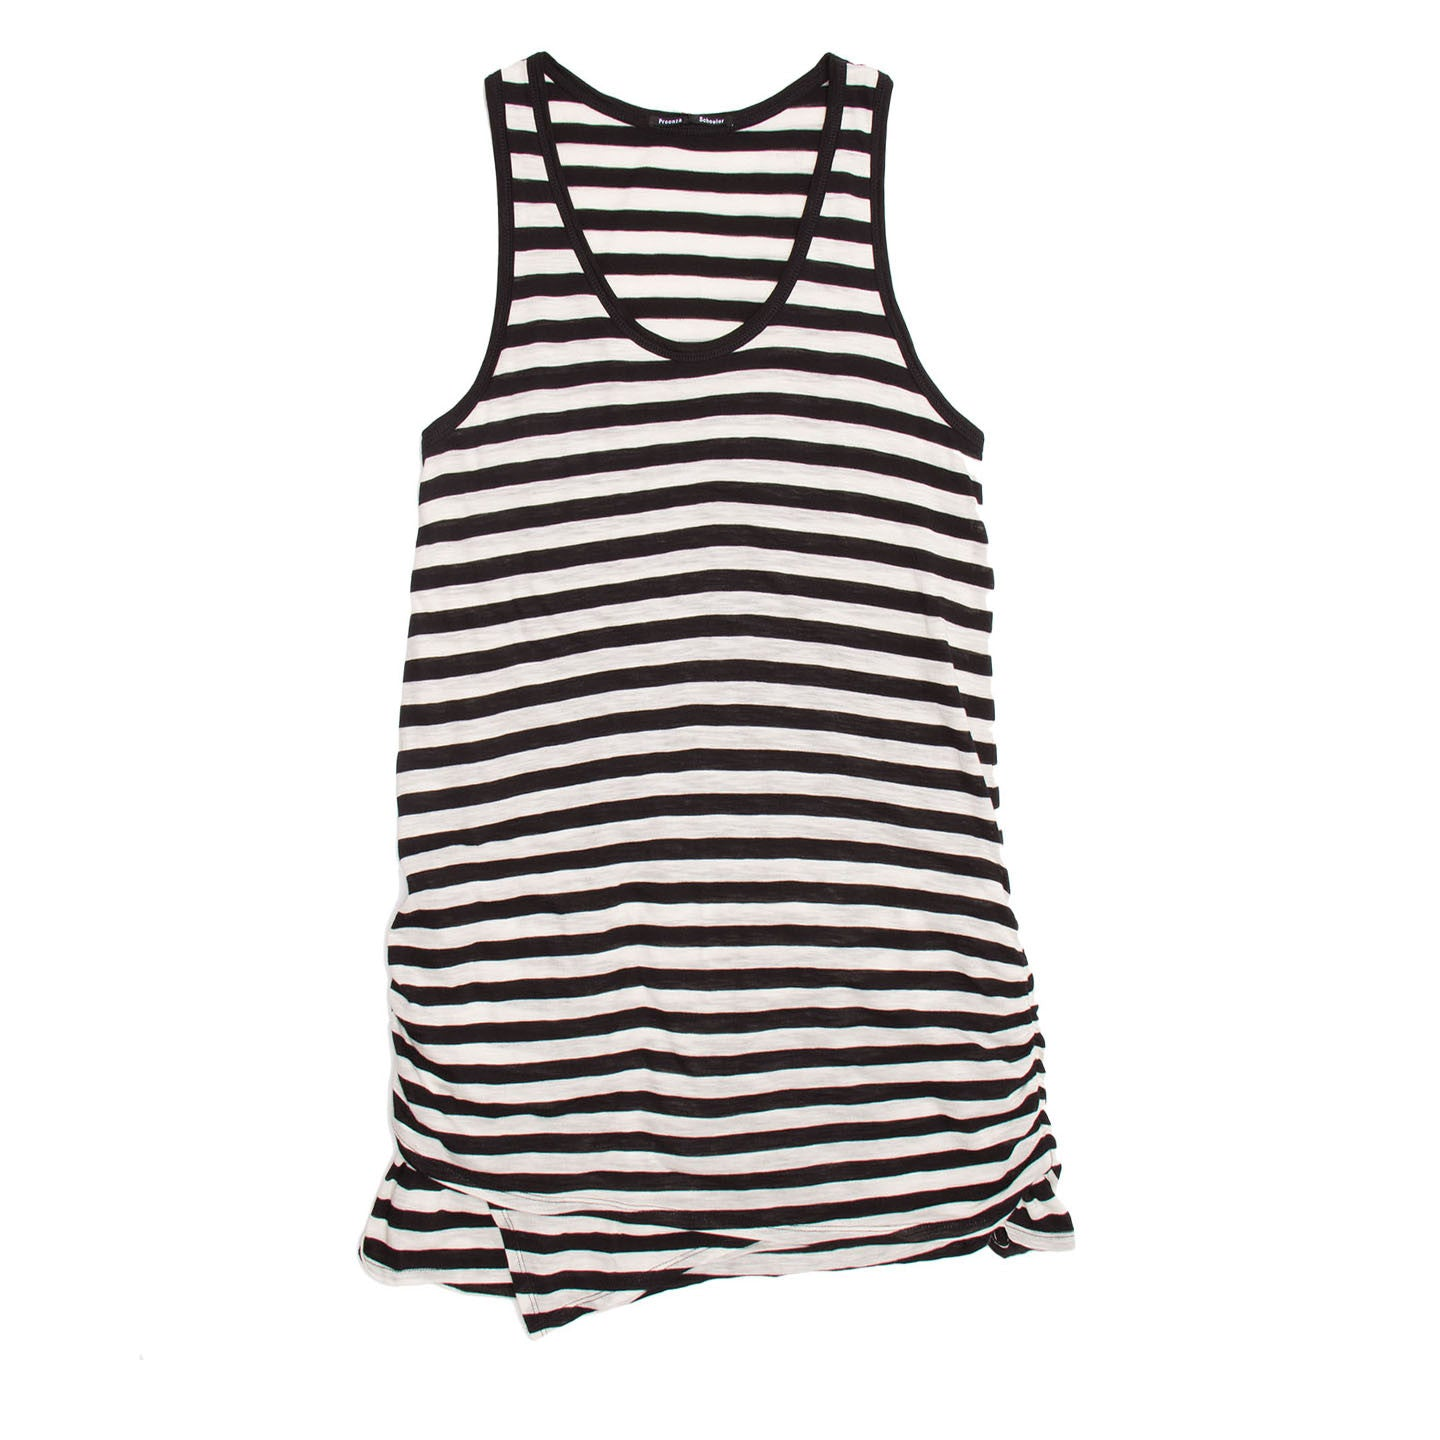 Find an authentic preowned Proenza Schouler Black & Ivory Striped Tank Dress, size L at BunnyJack.